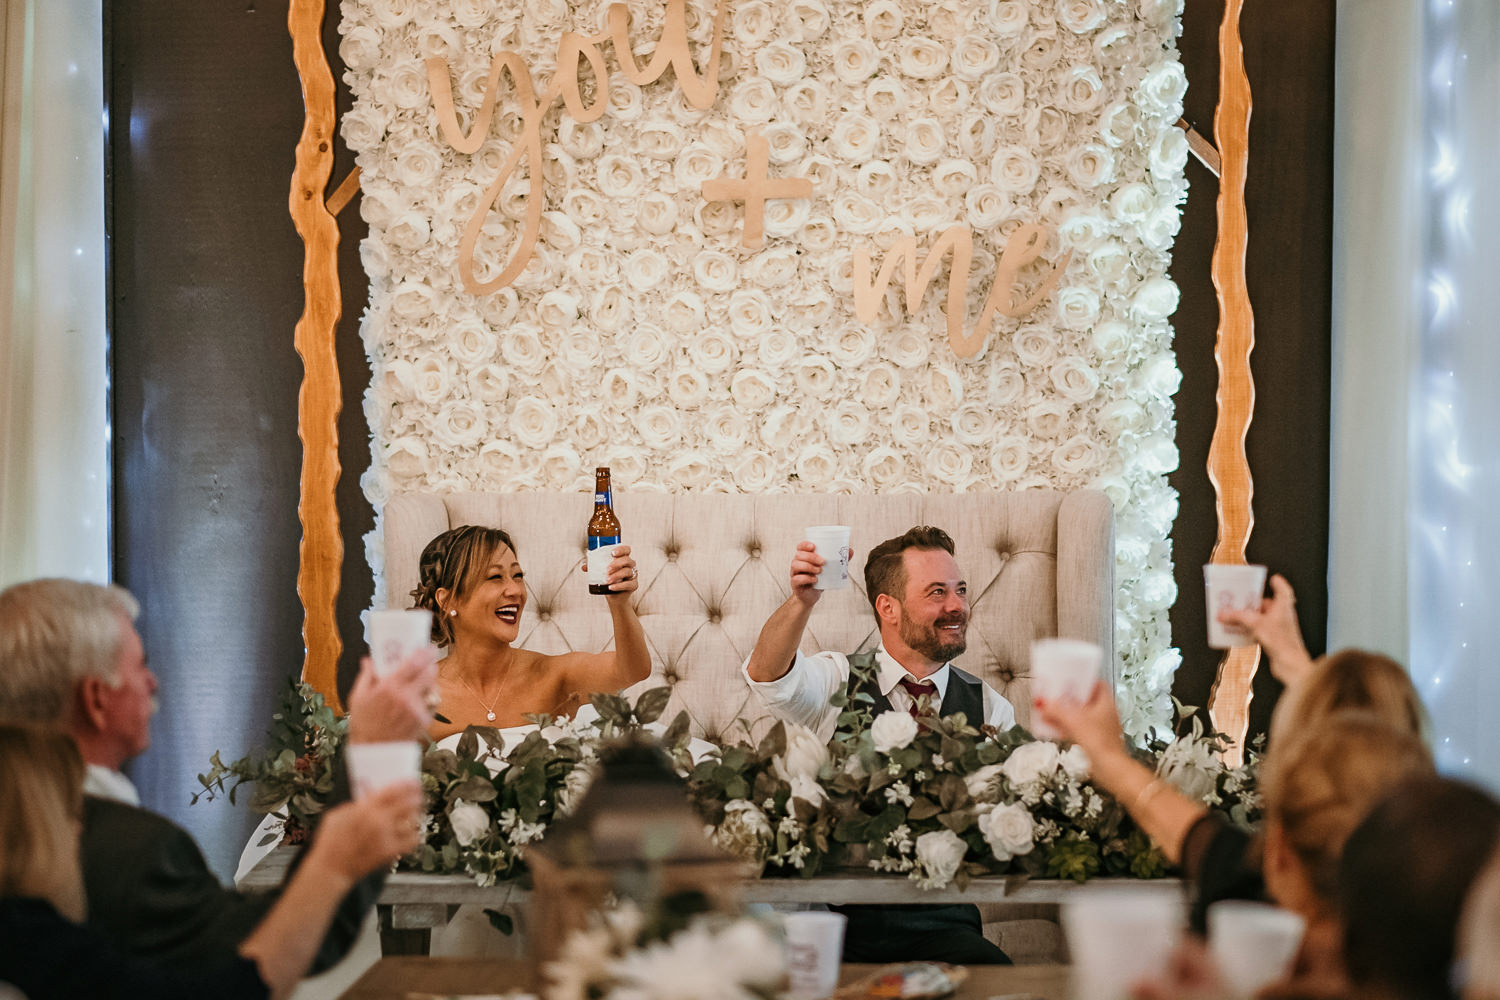 newlyweds sitting and holding up beers cheering with crowd